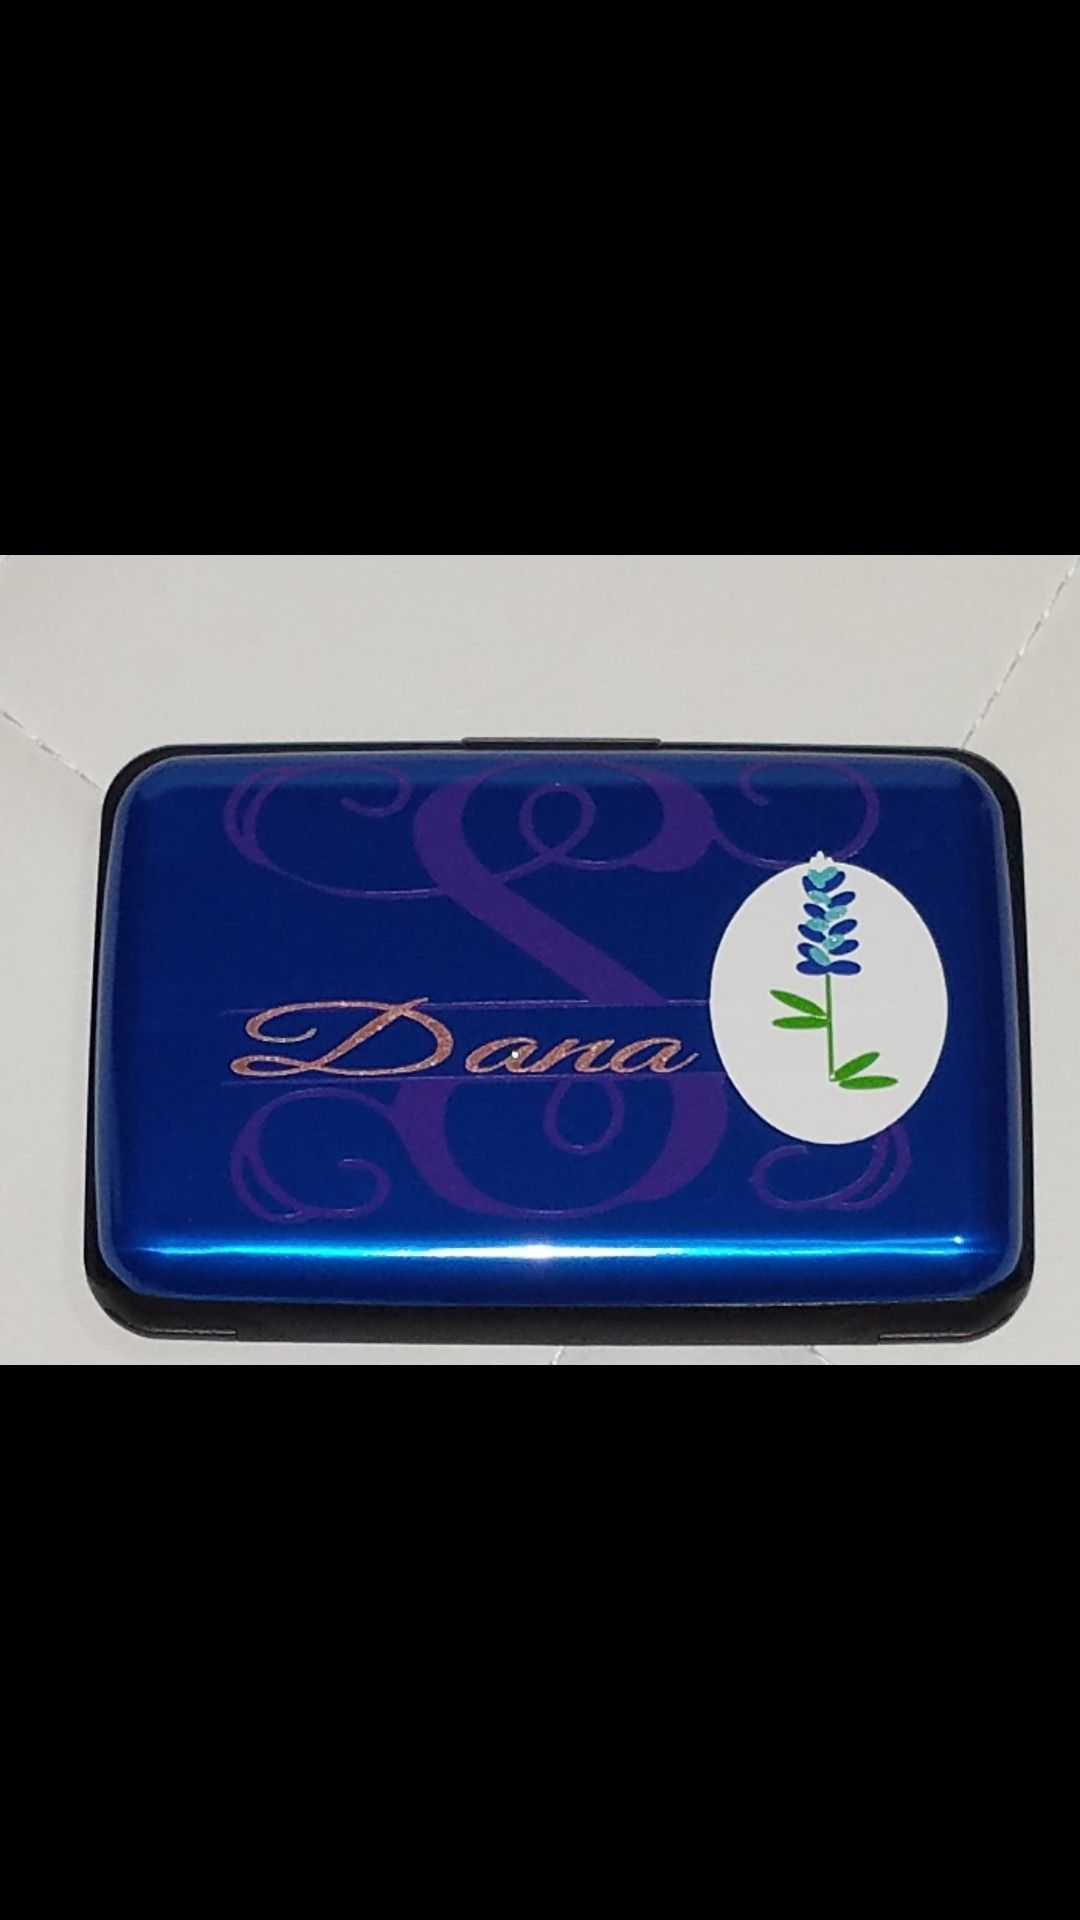 839ace56cc5d This is a custom and handmade vinyl with personalized credit card ...